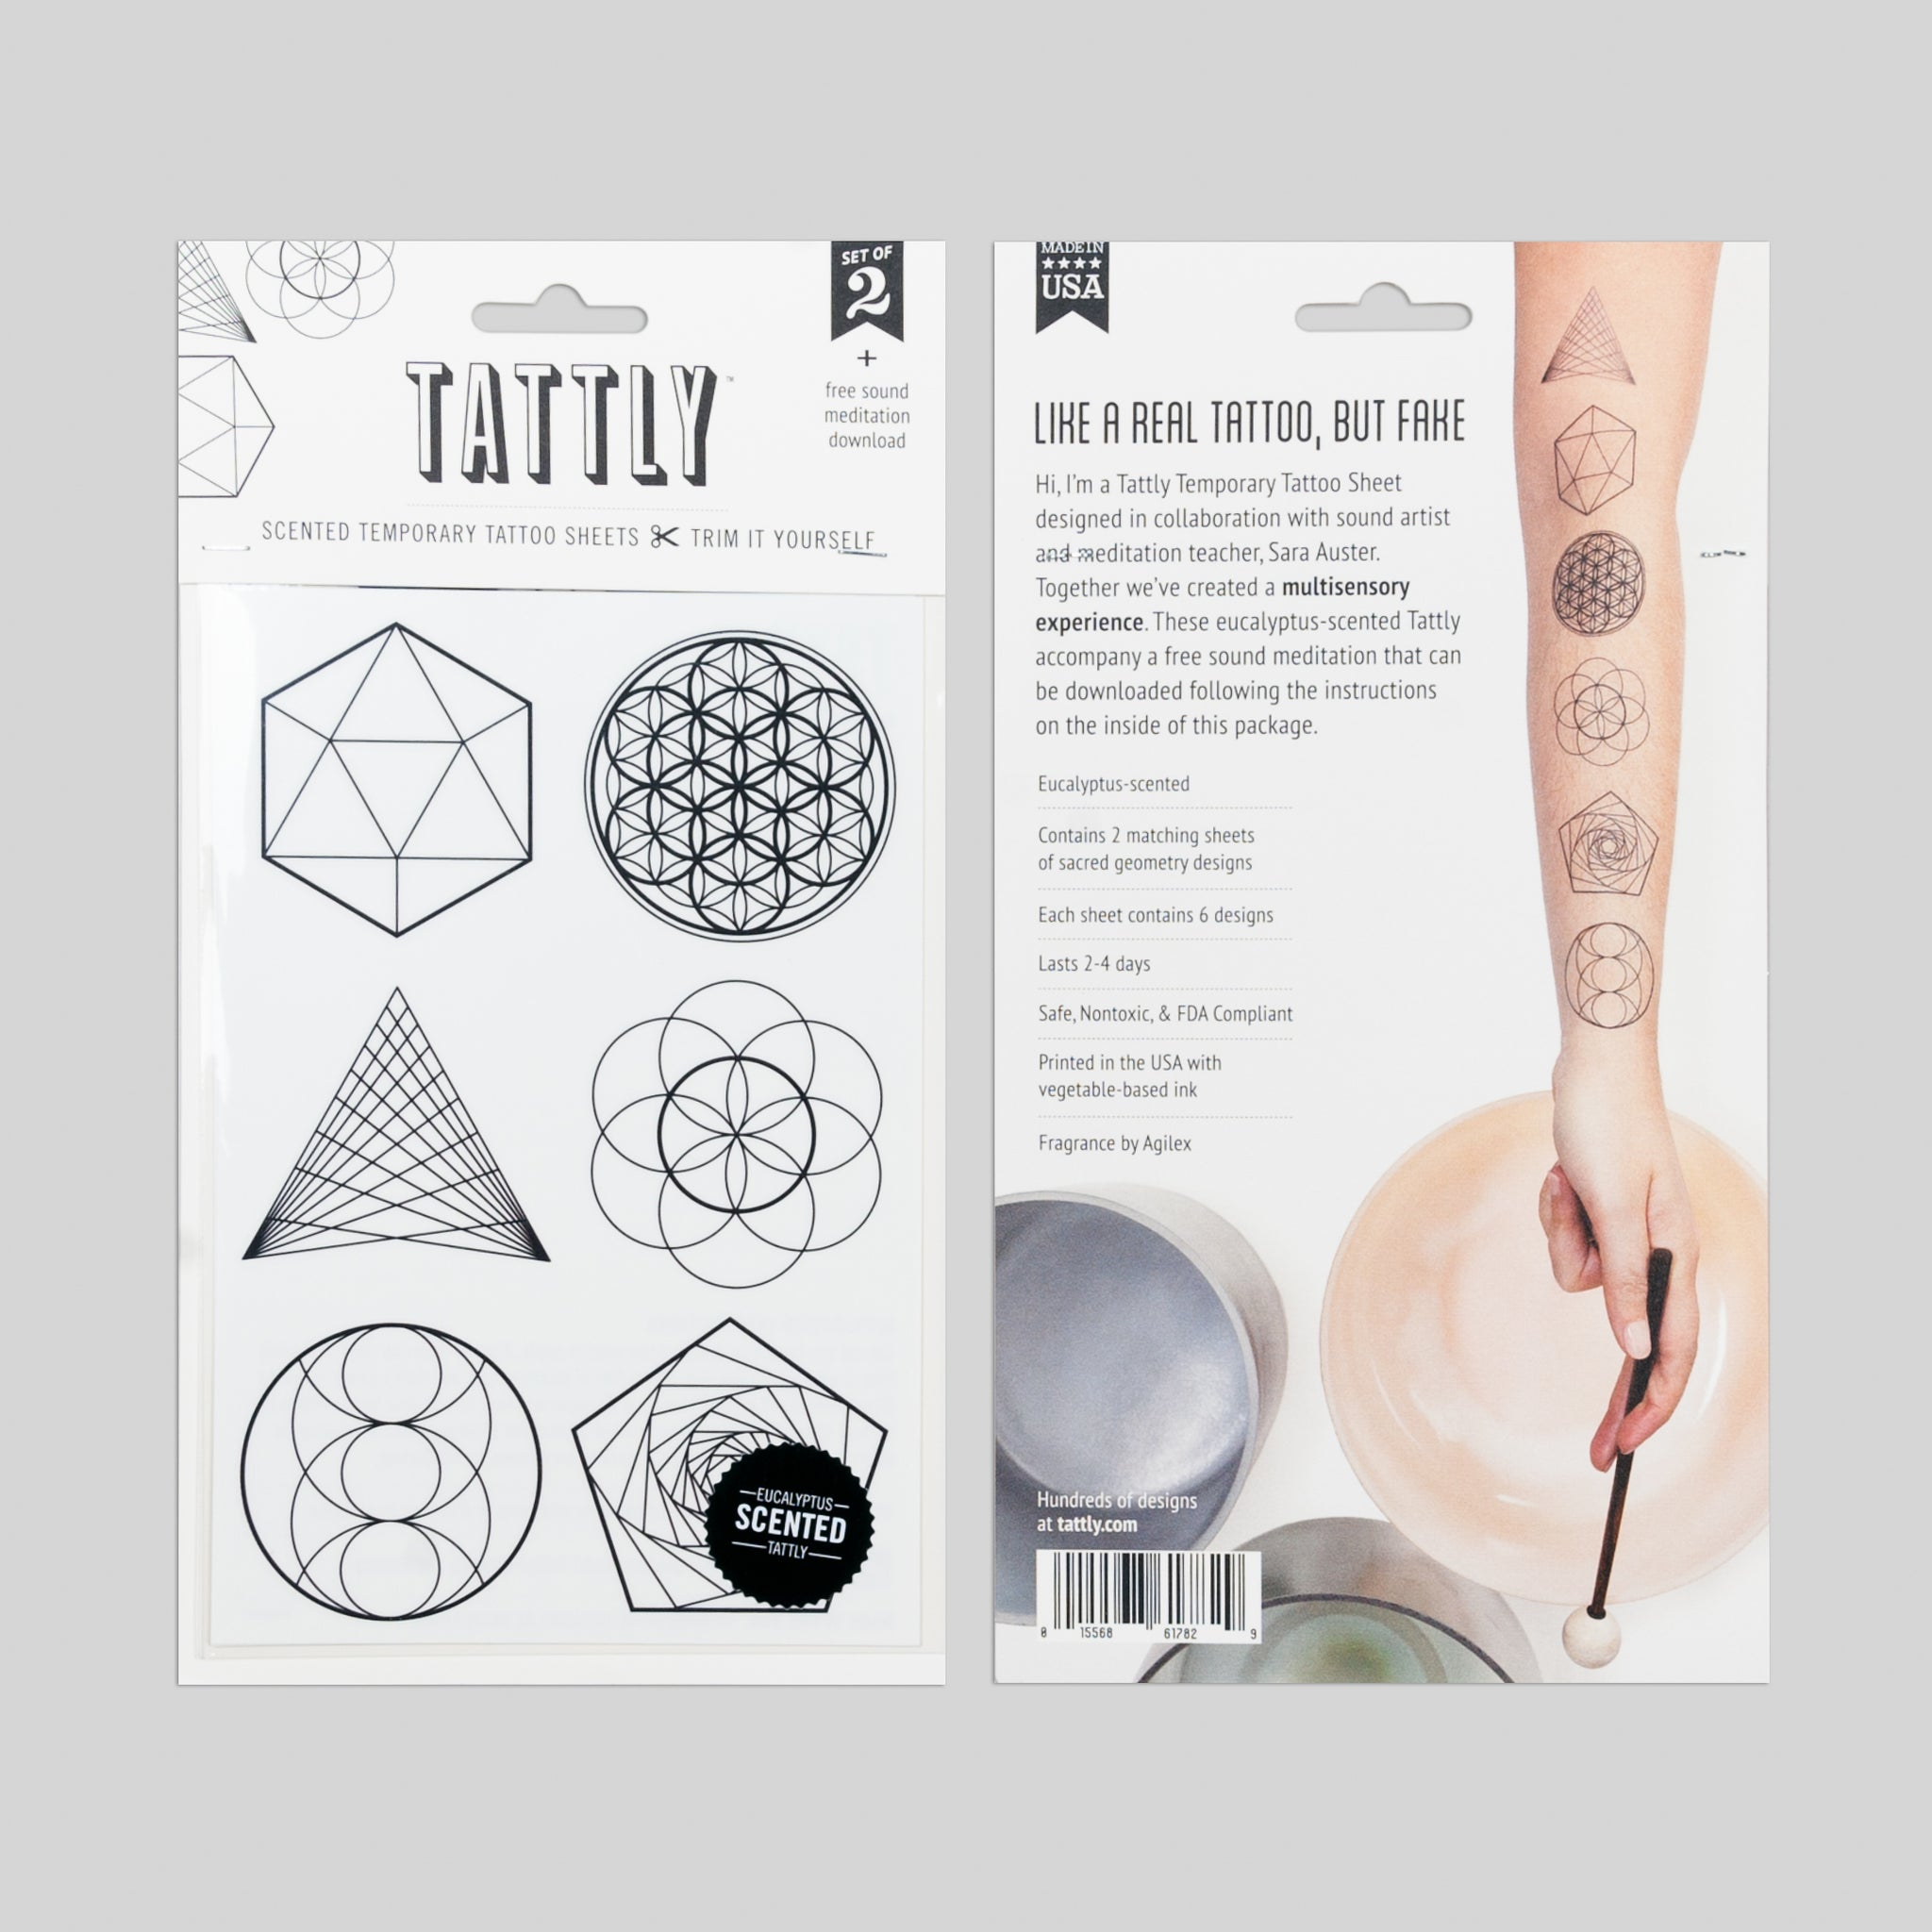 Sacred Geometry Sheet (Scented) by Sara Auster from Tattly Temporary